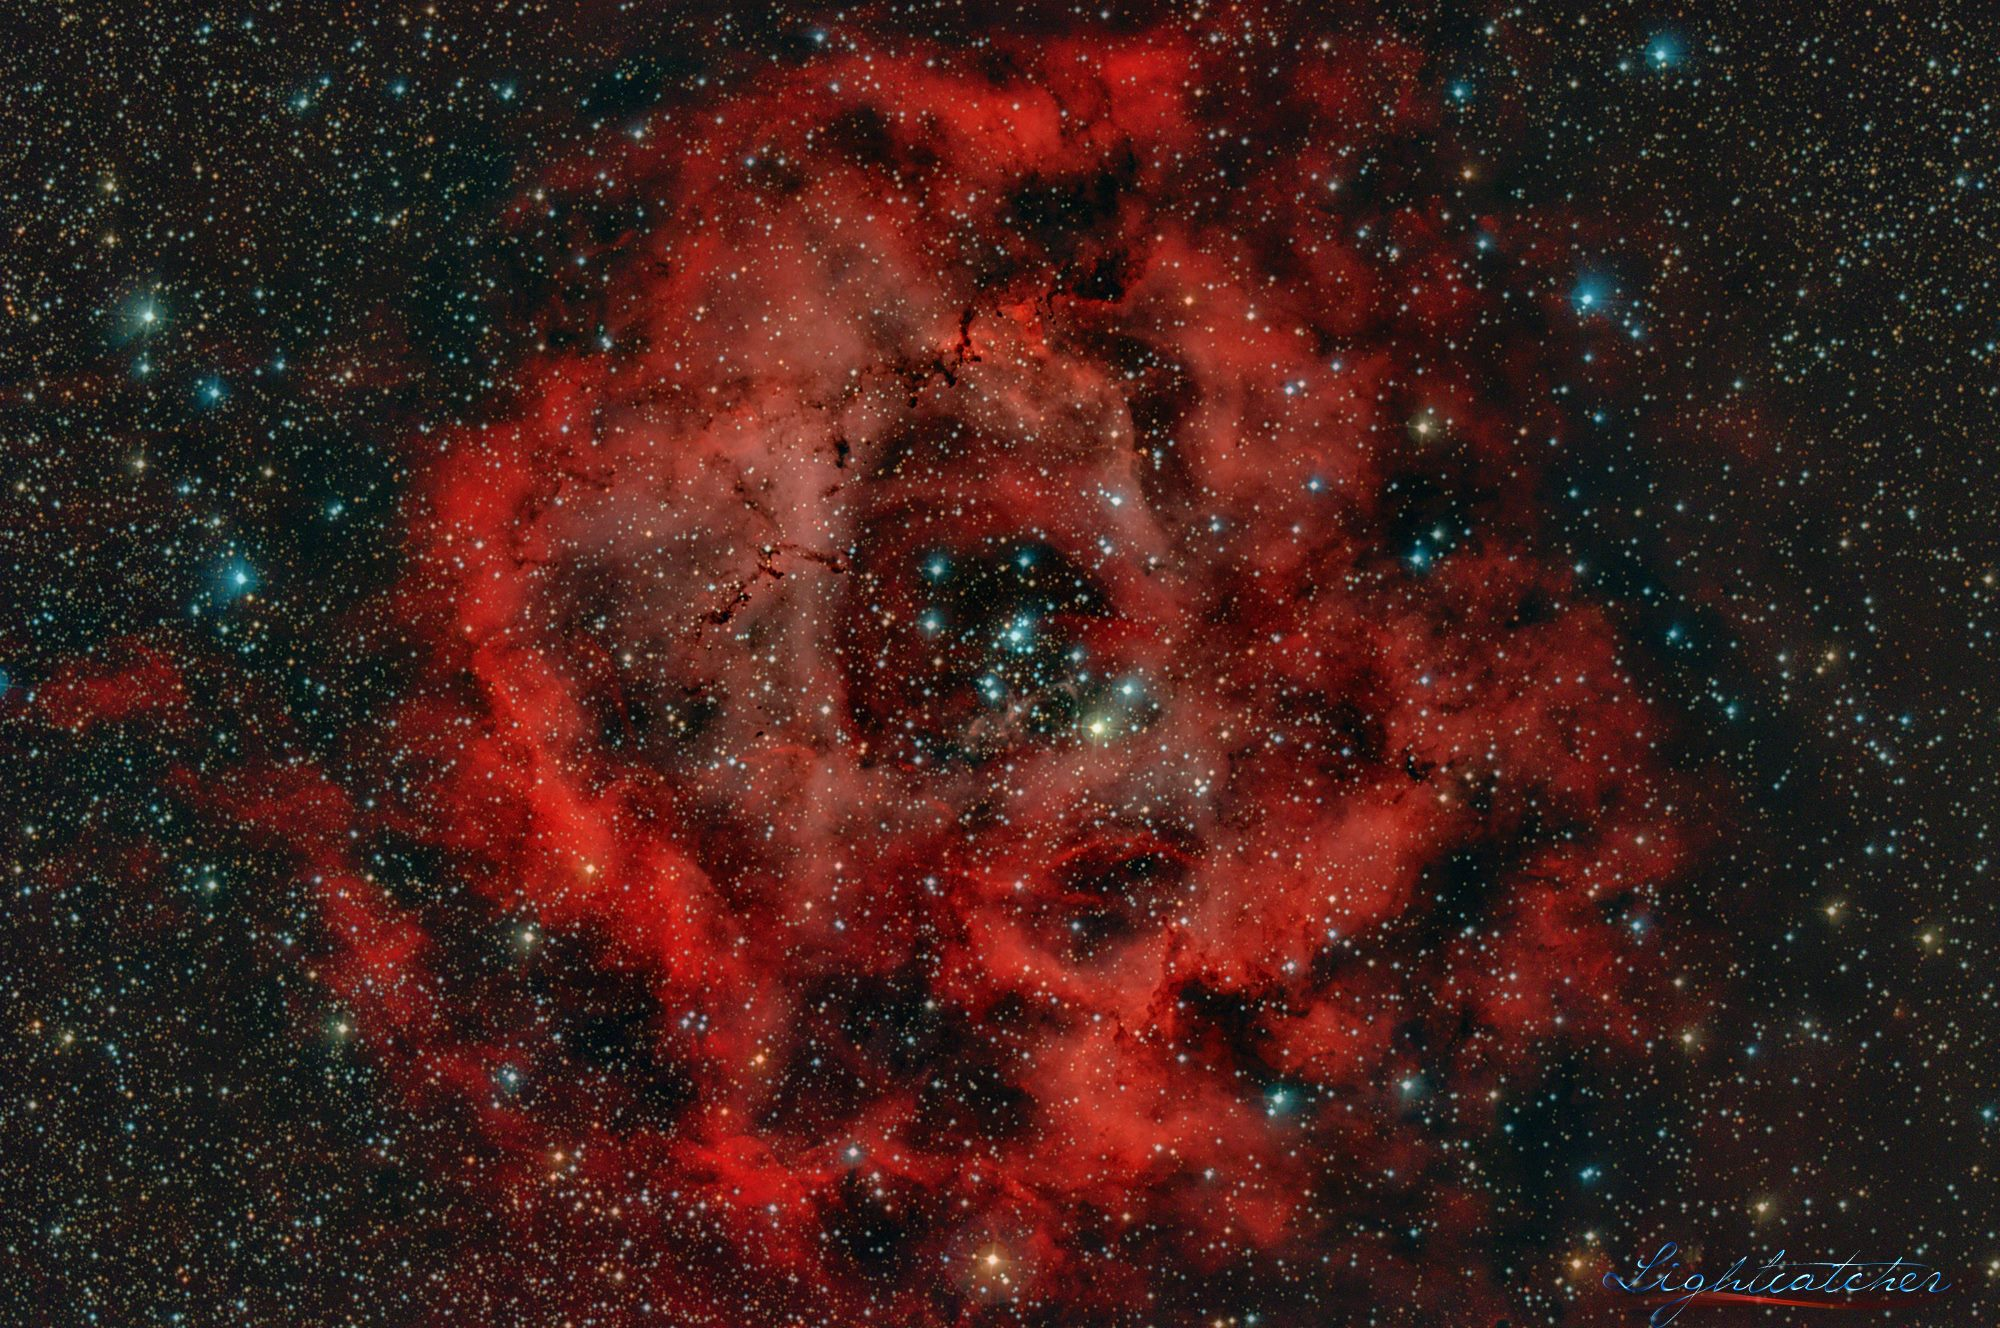 The Rosette Nebula (also known as Caldwell 49)